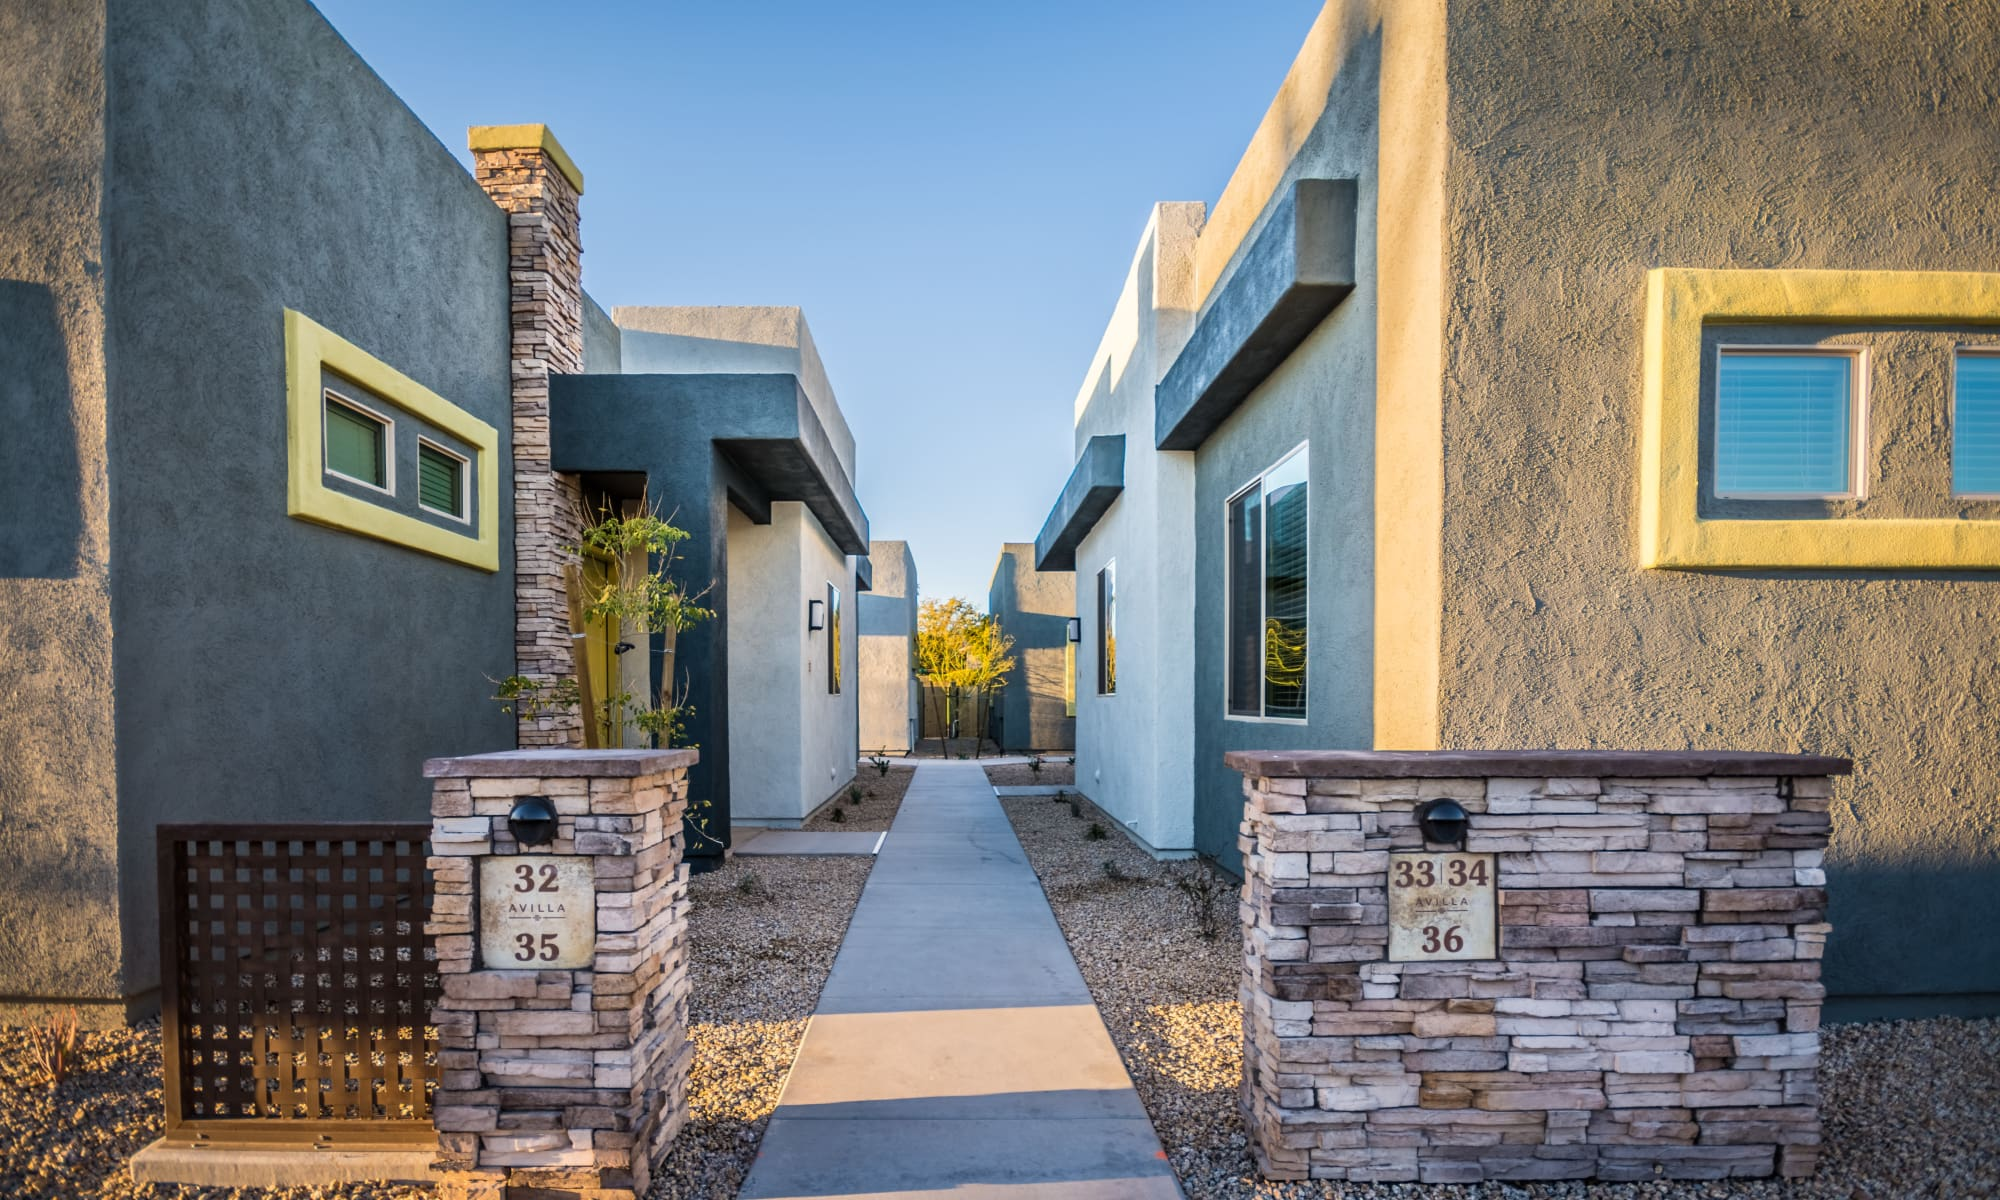 Apartments in Queen Creek, Arizona at Avilla Victoria